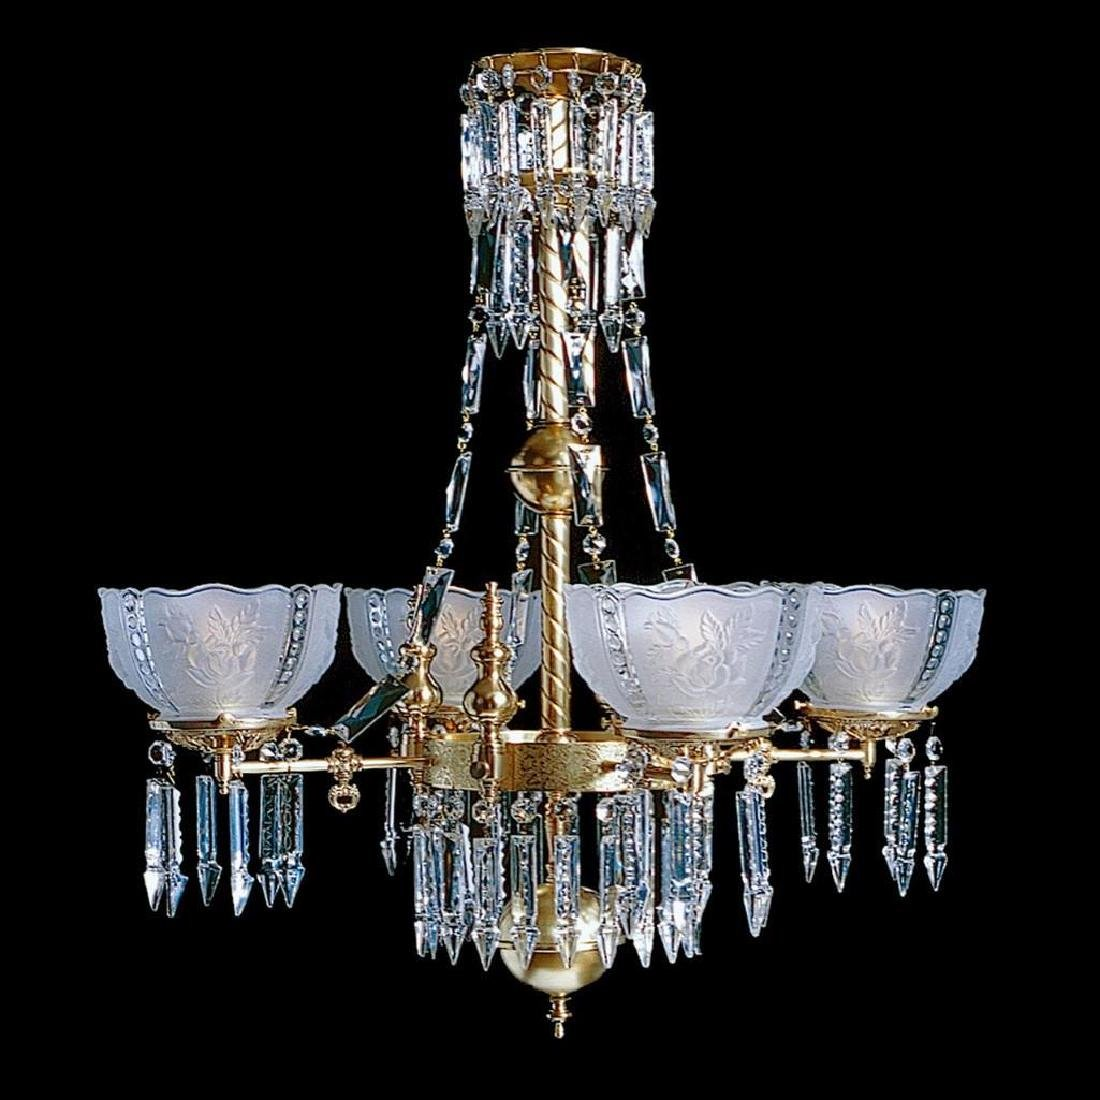 Whitaker 4B - 4 Light Brass and Crystal Victorian